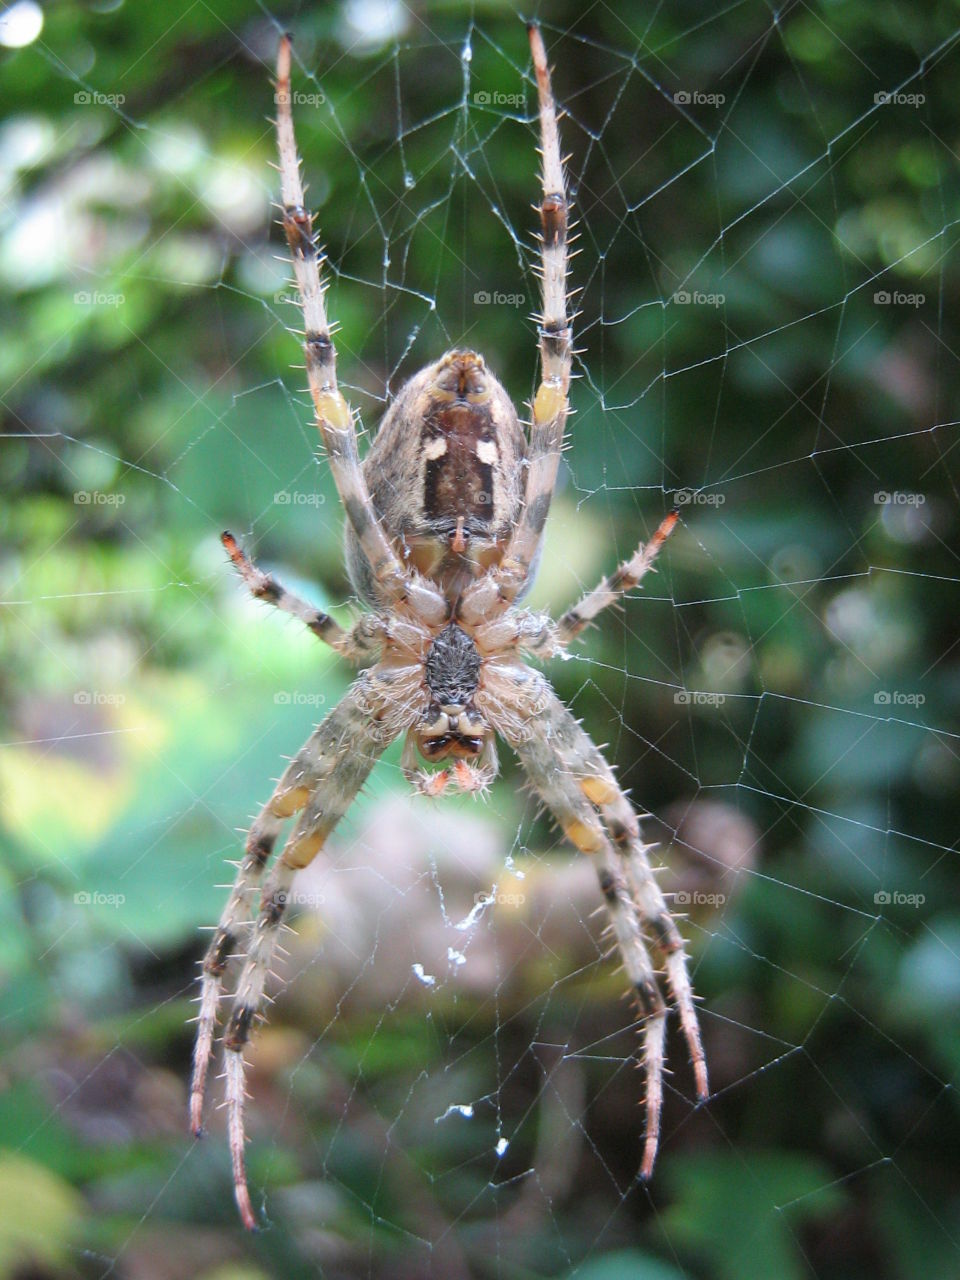 Extreme close-up of spider on spiderweb